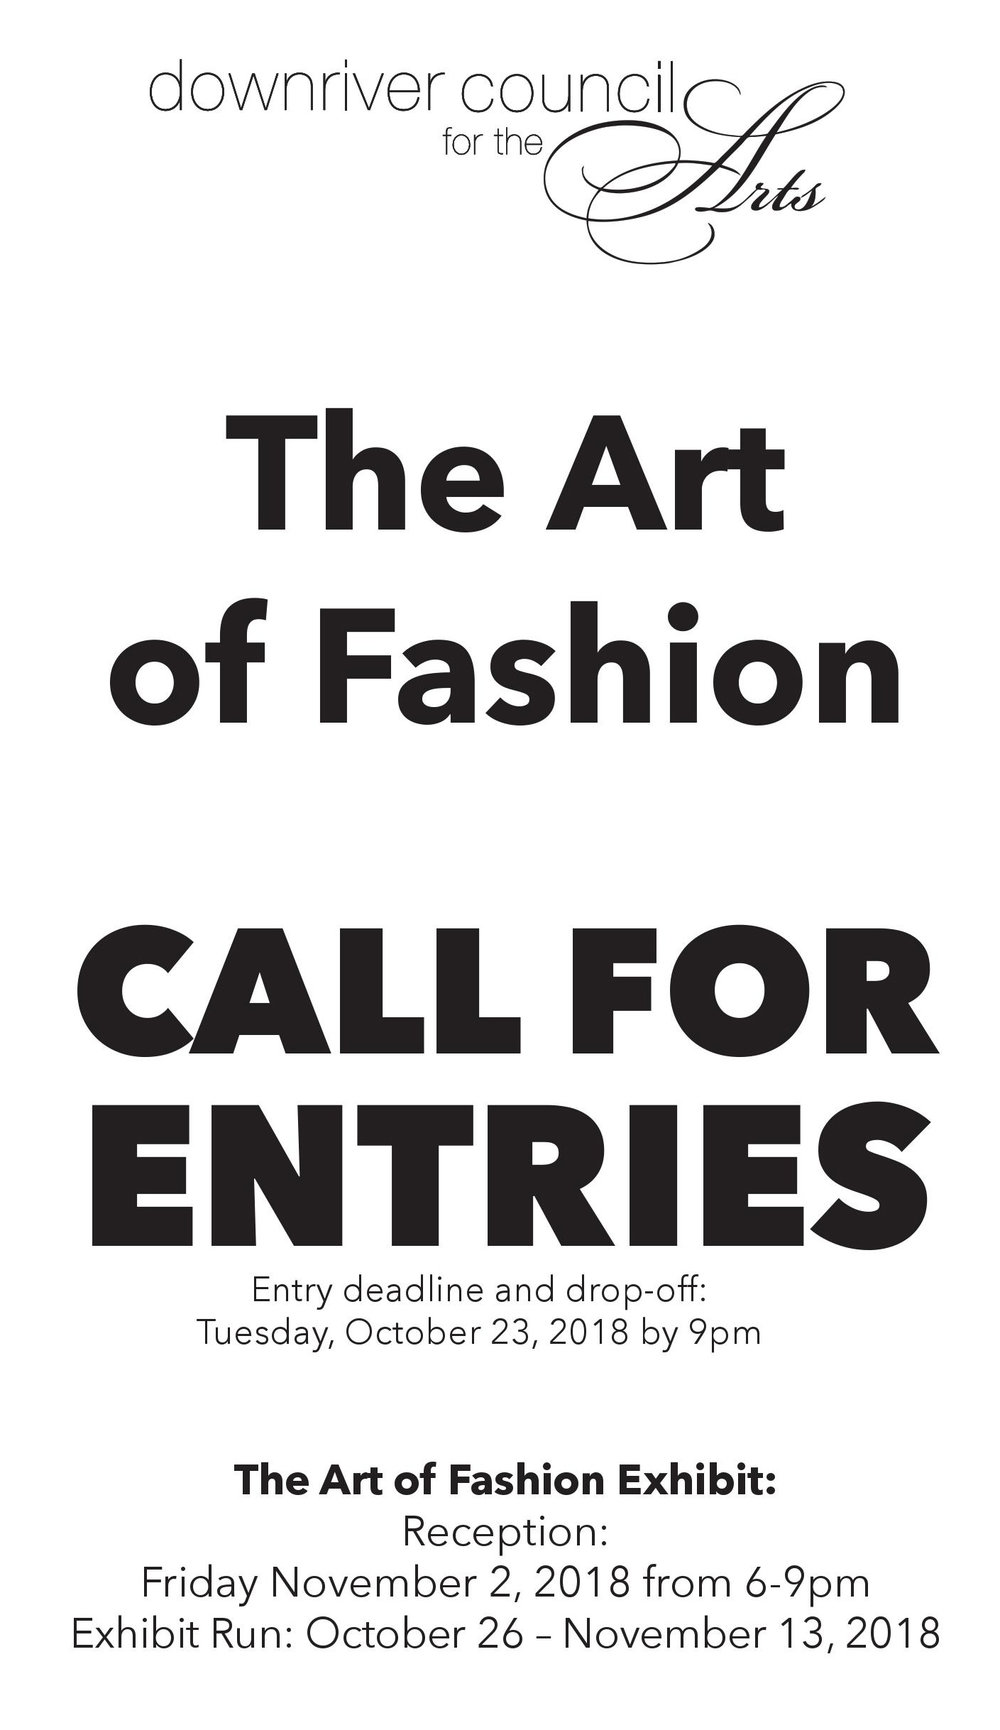 To enter, download the exhibit guidelines by clicking on the image above.